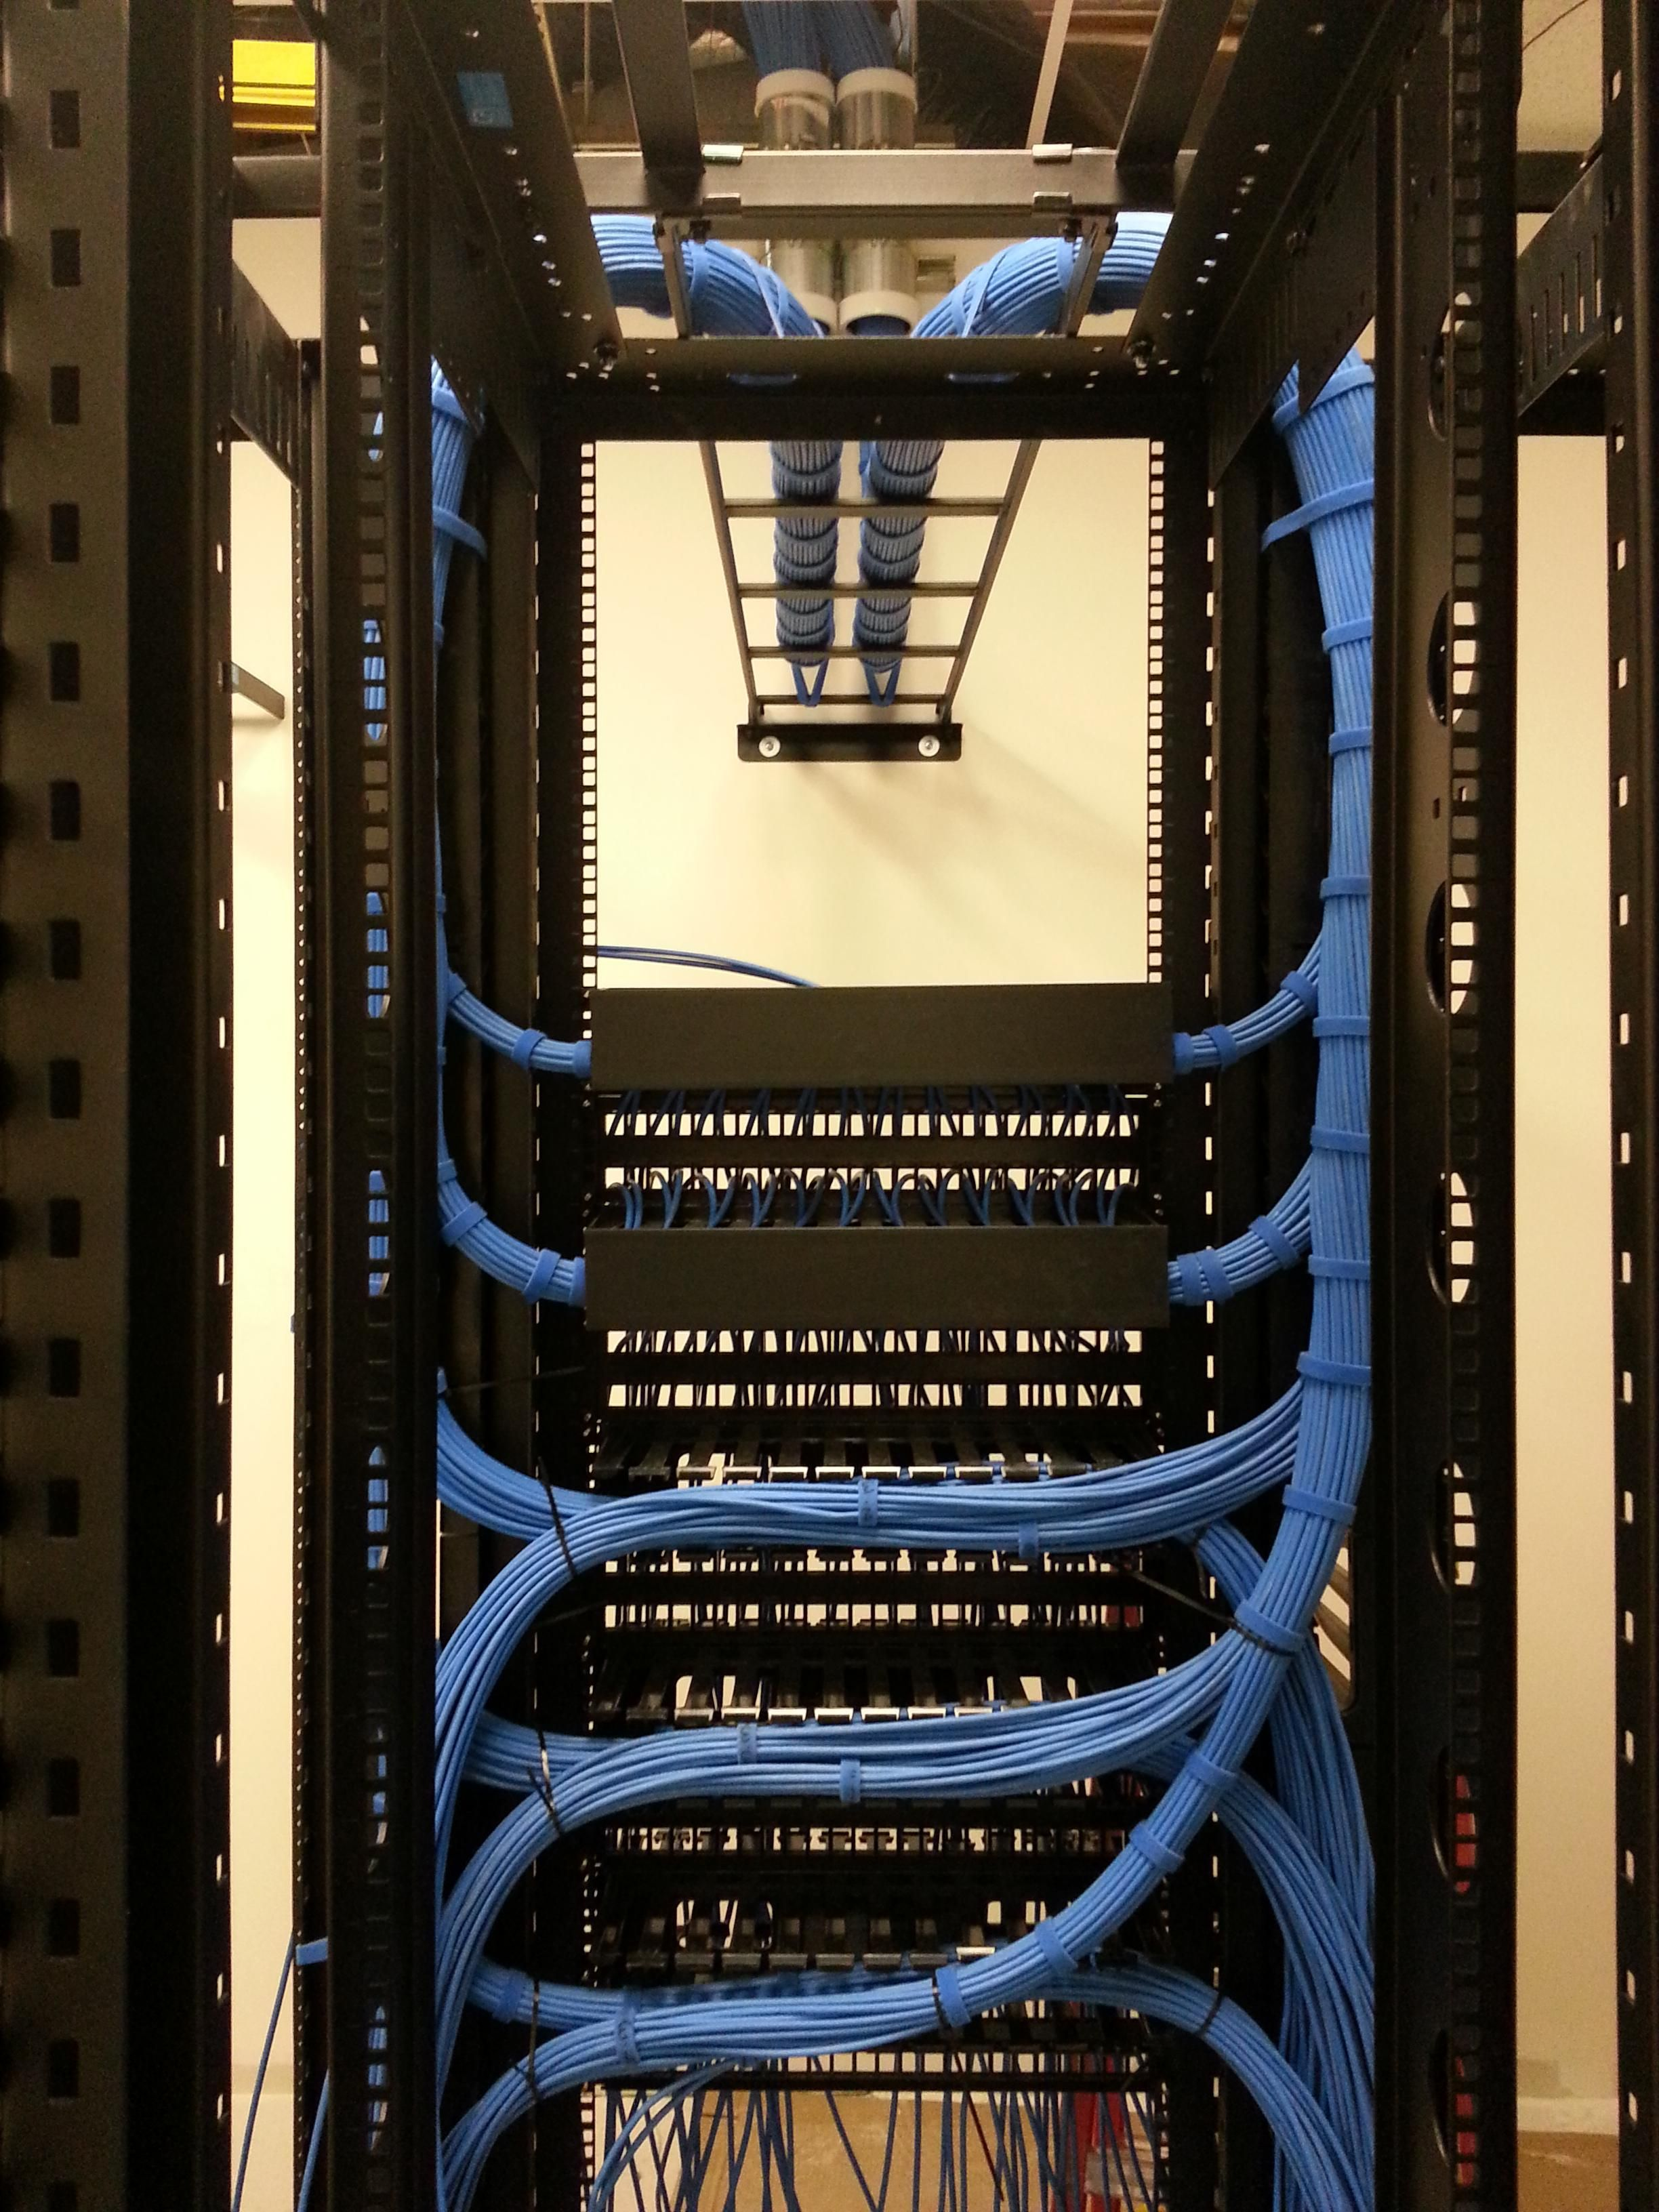 Proud Of This One In 2018 Cable Management Structured Wiring Home Network Great Going Into A Rack Build Process